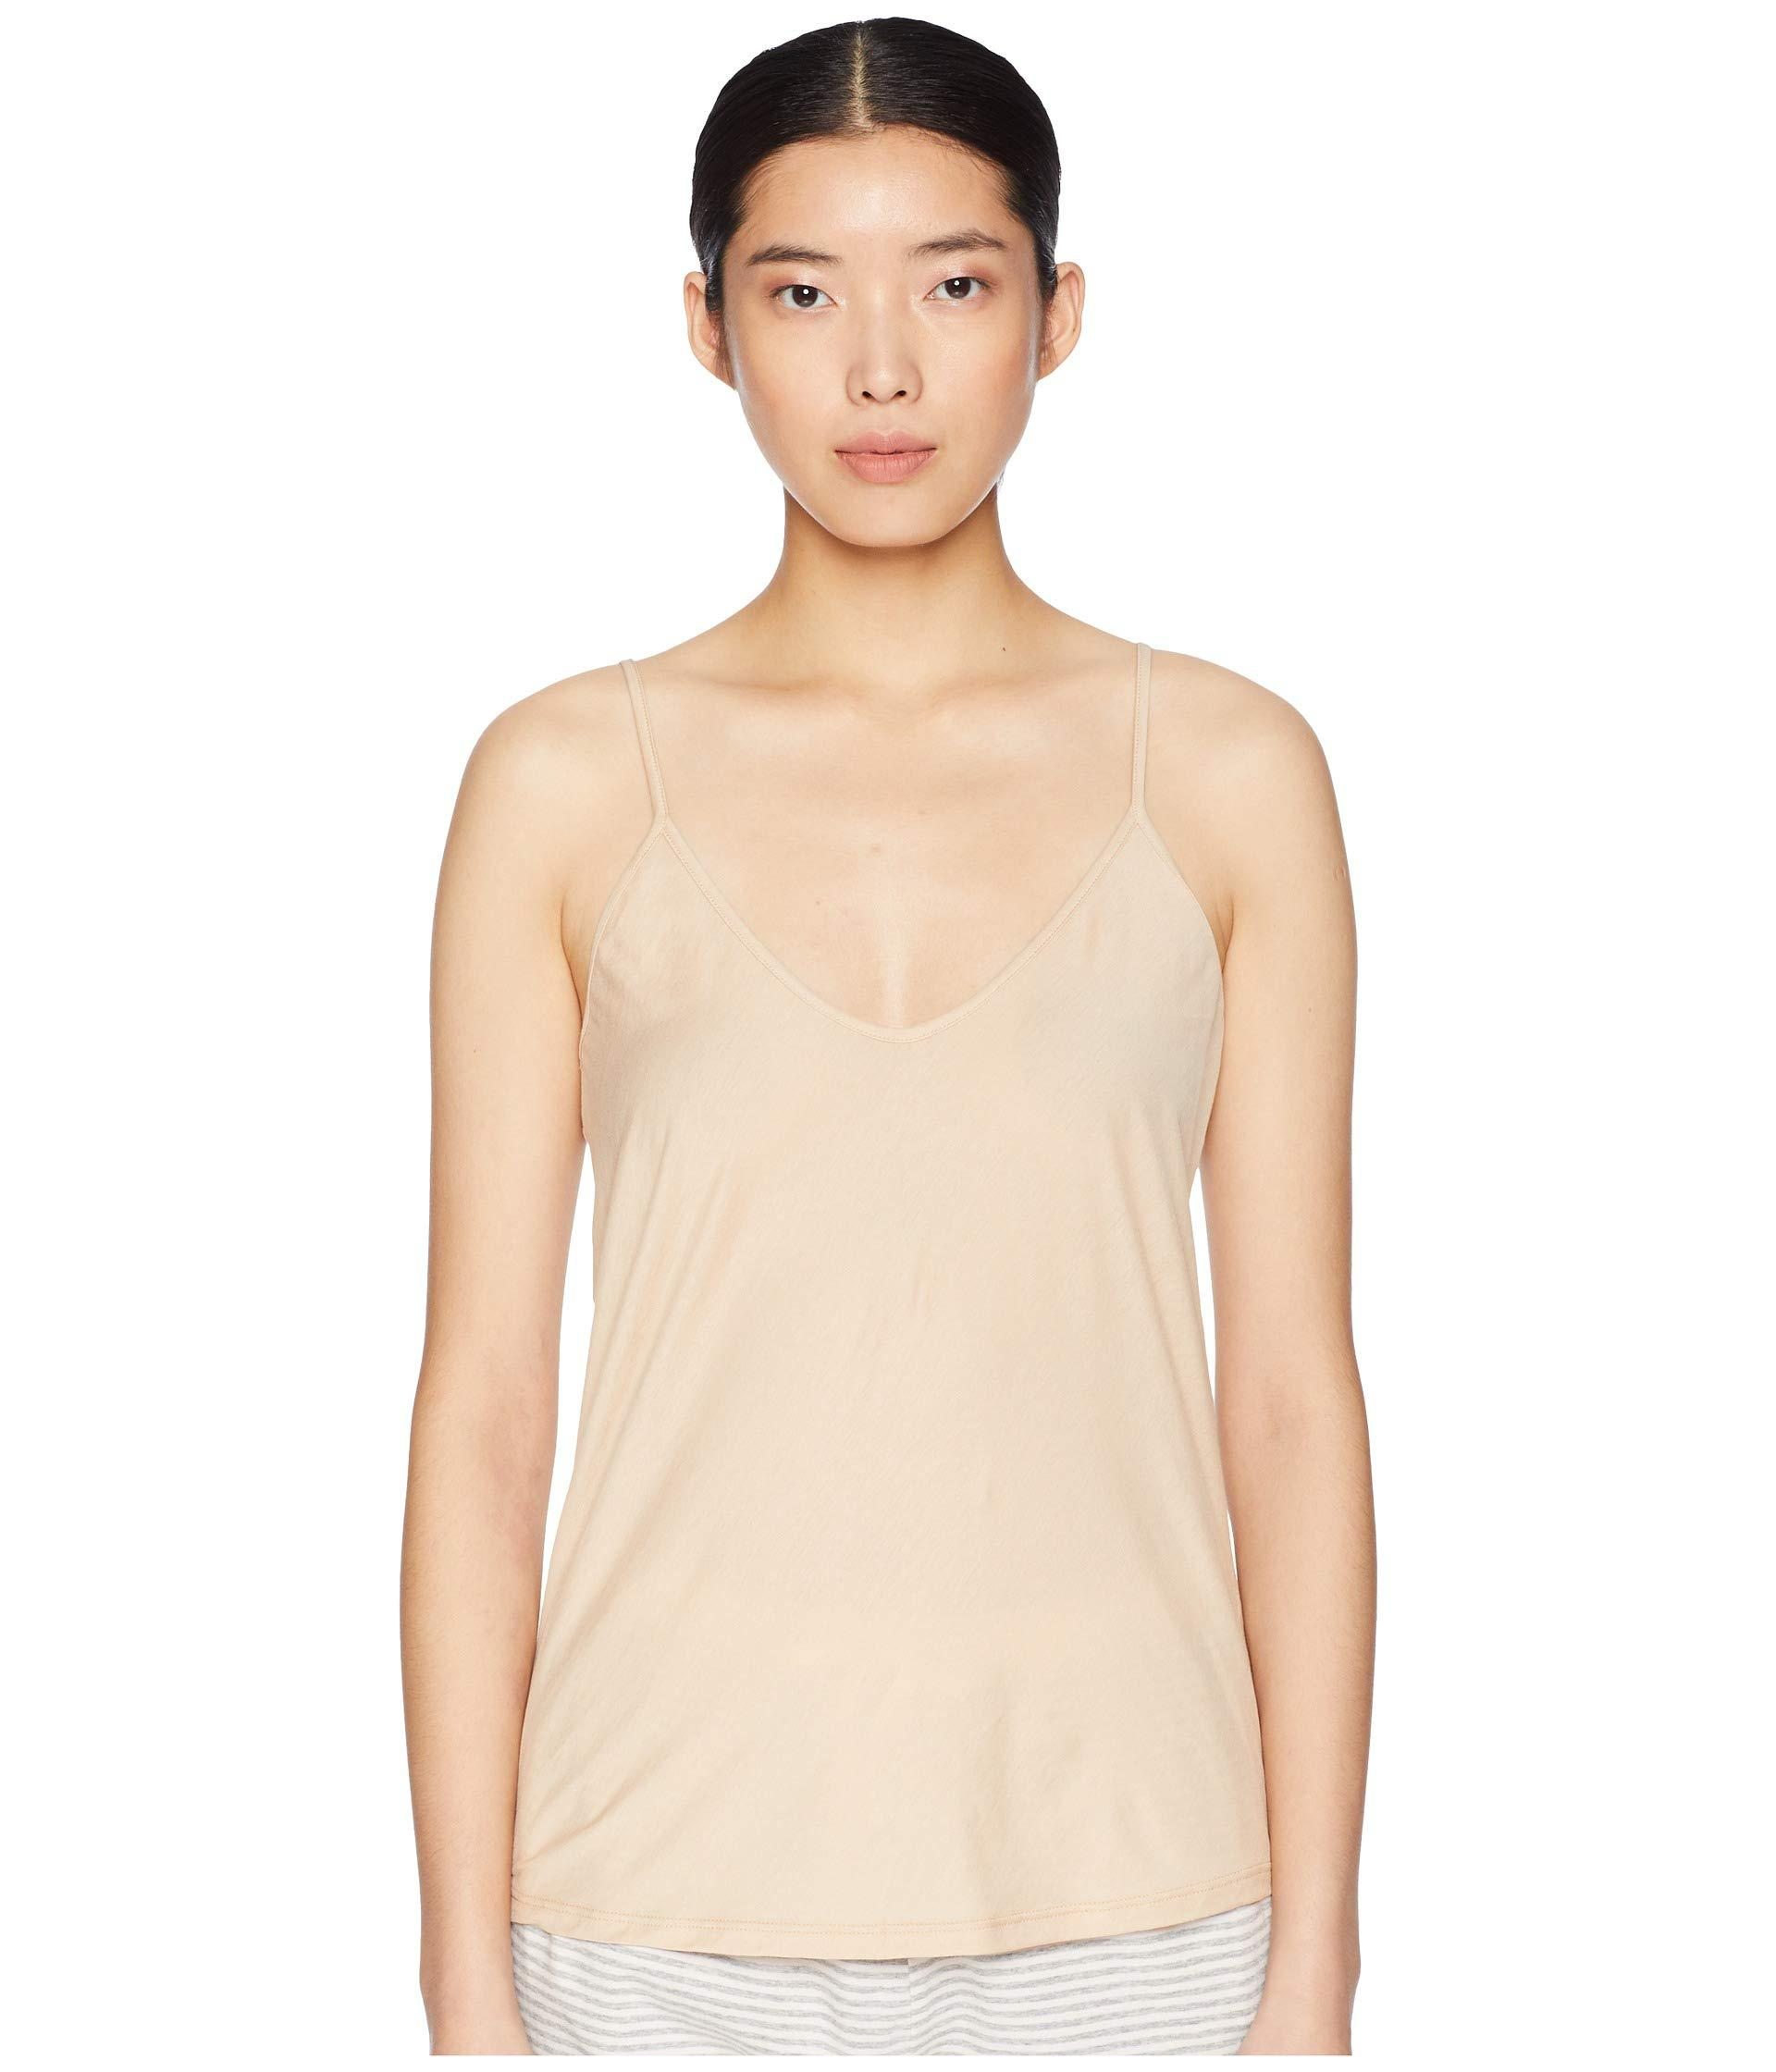 Lyst - Skin Sexy Cami Single Jersey (white) Women s Pajama in Natural 56a28e5ba